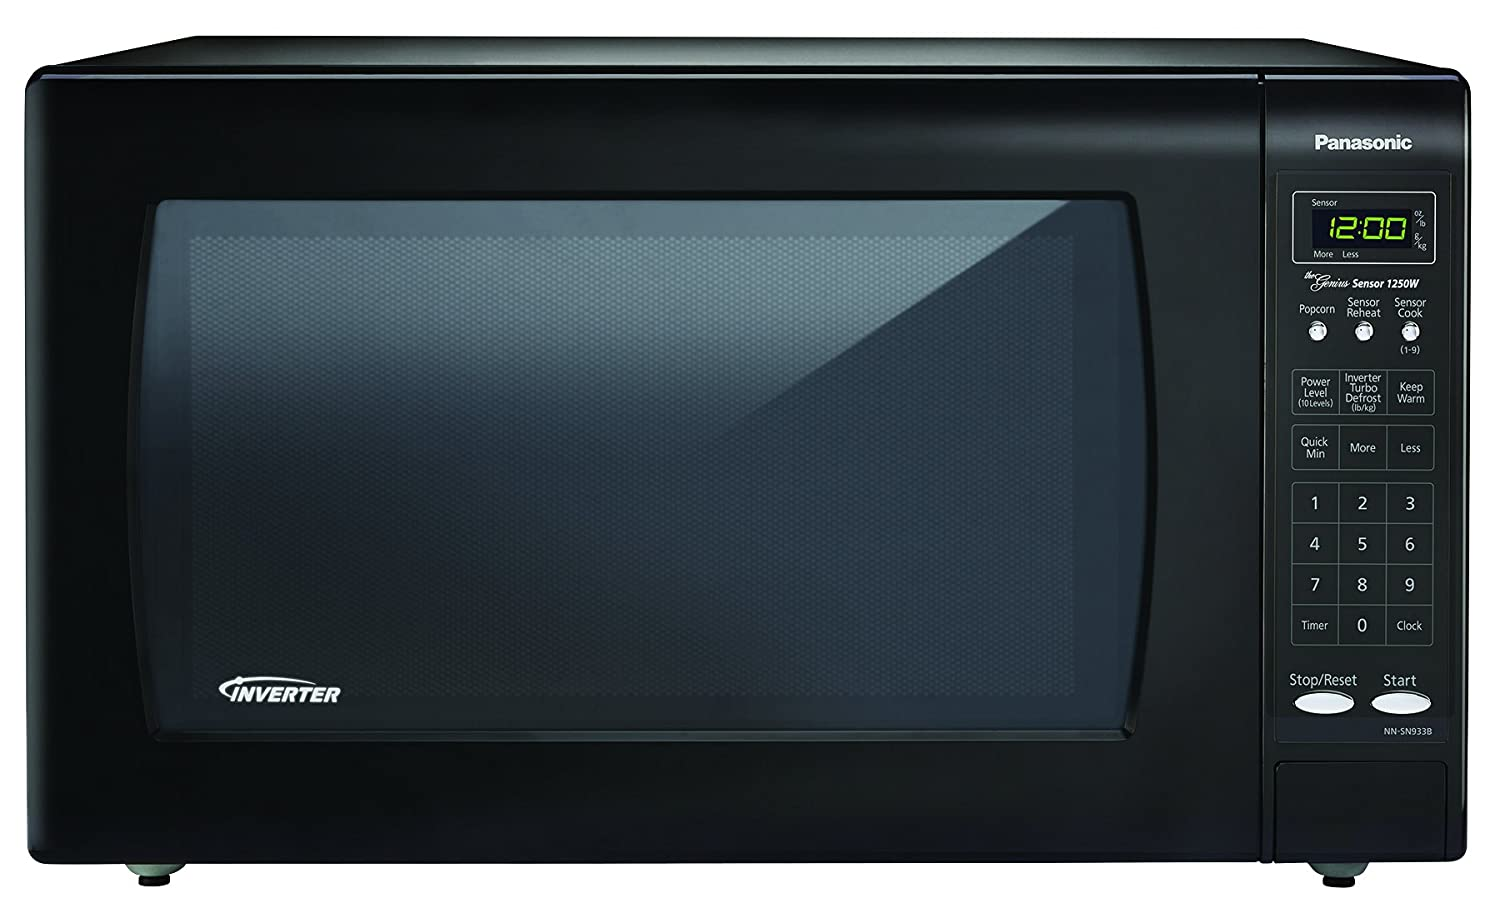 Top 10 Best Microwave Ovens (2020 Reviews & Buying Guide) 9